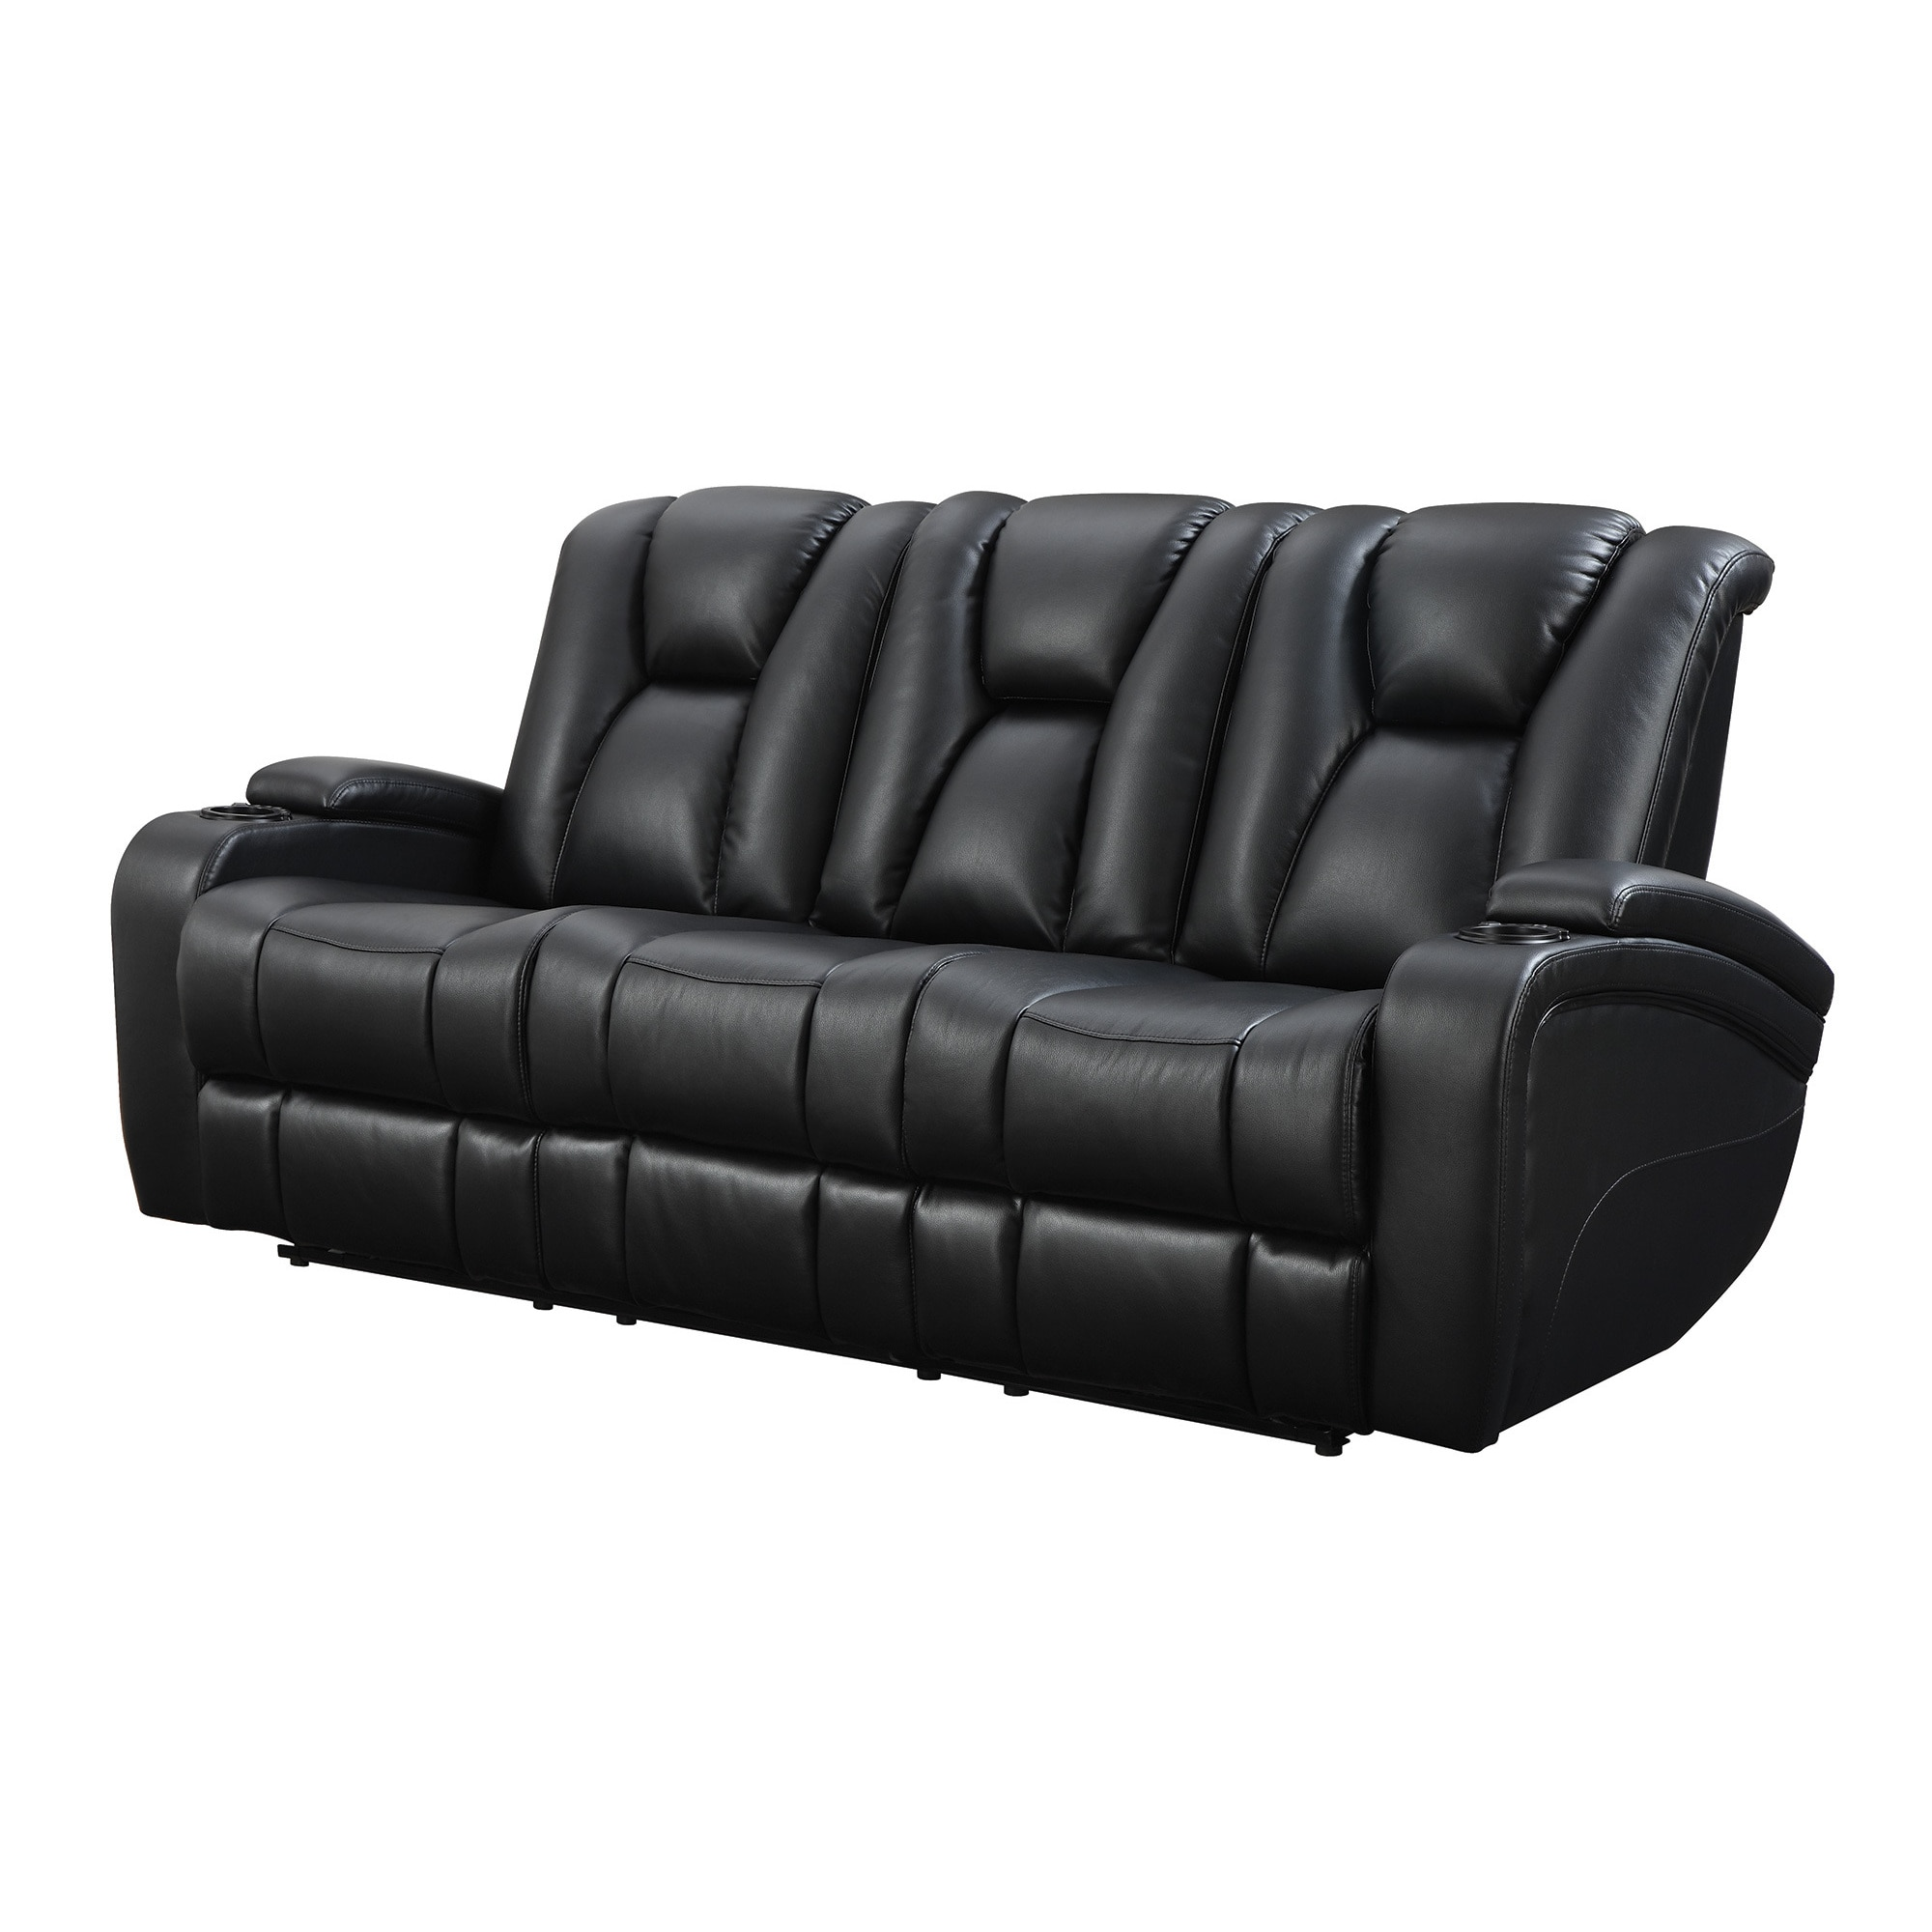 Stupendous Coaster Company Black Leatherette Power Recliner Motion Sofa Home Interior And Landscaping Palasignezvosmurscom